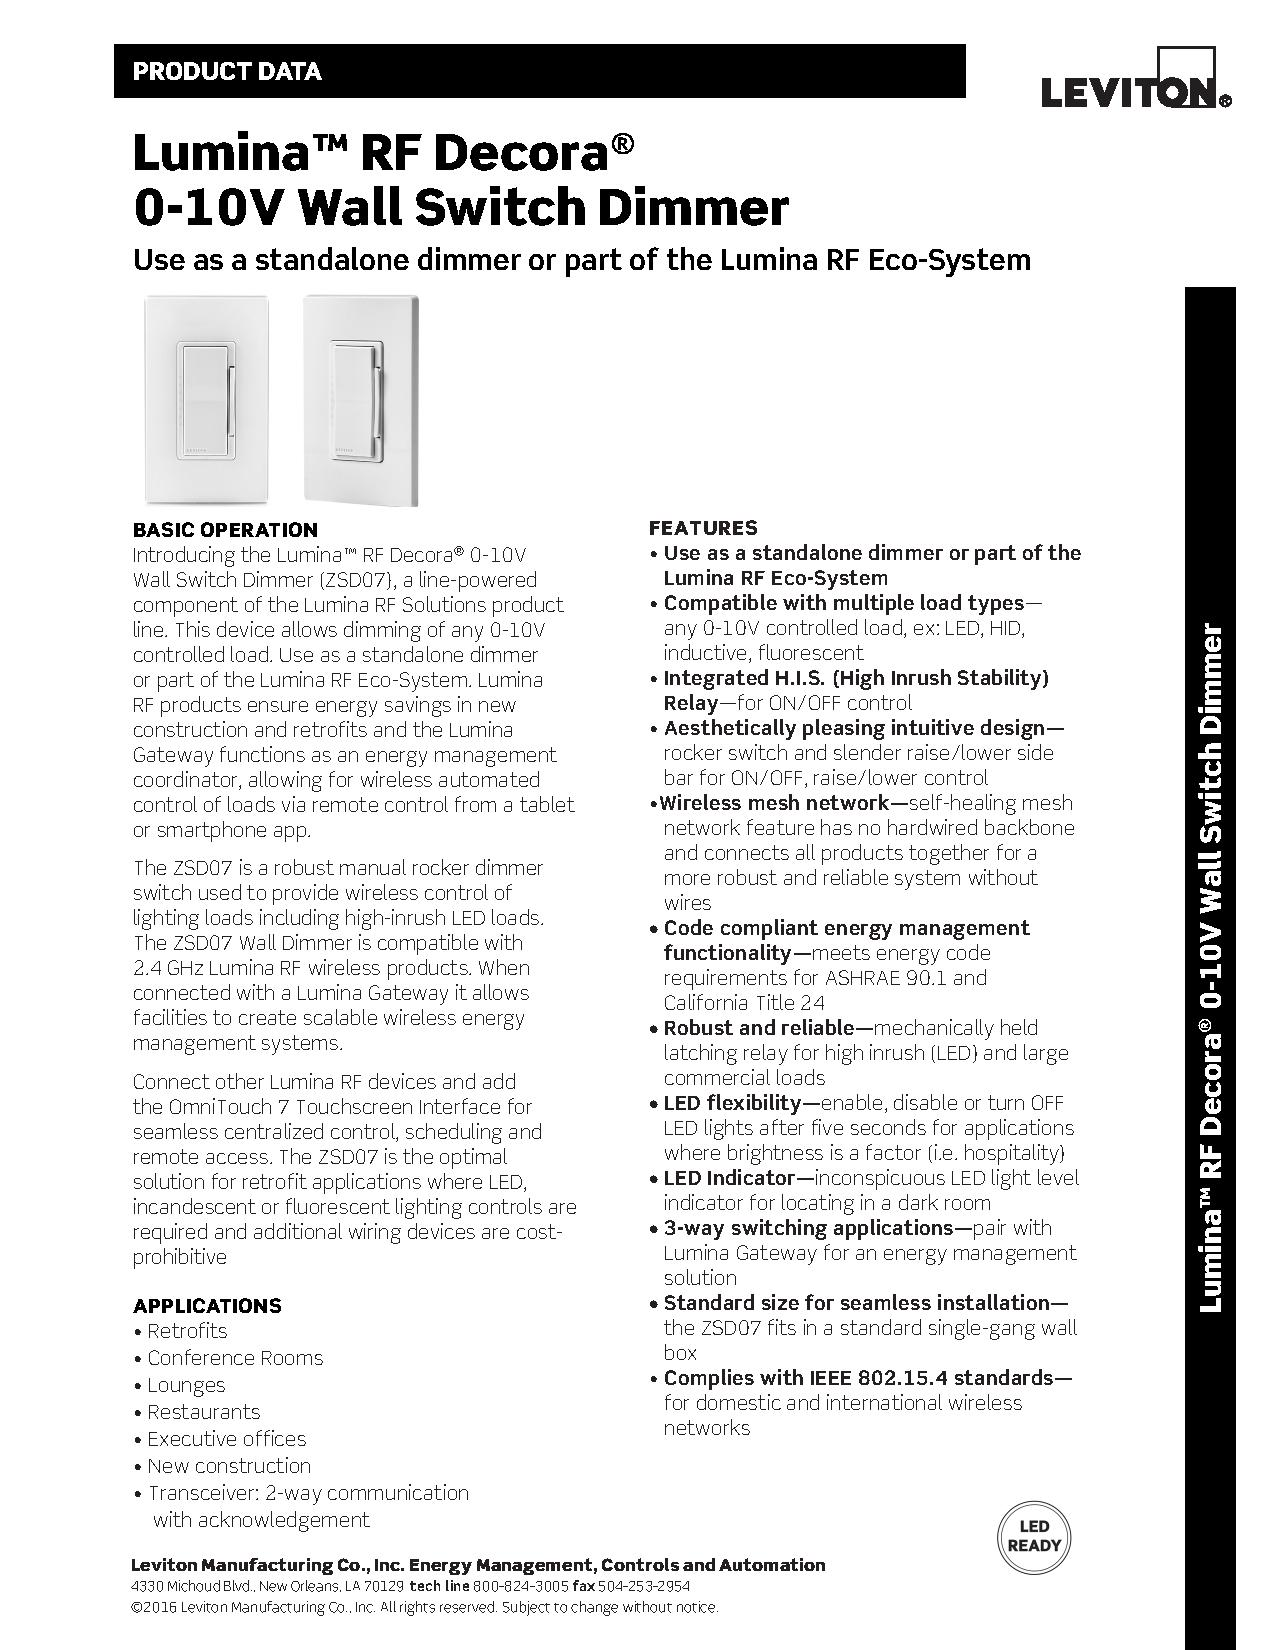 Leviton Lumina™ RF Decora® 0-10V Wall Switch Dimmer | AJB Sales